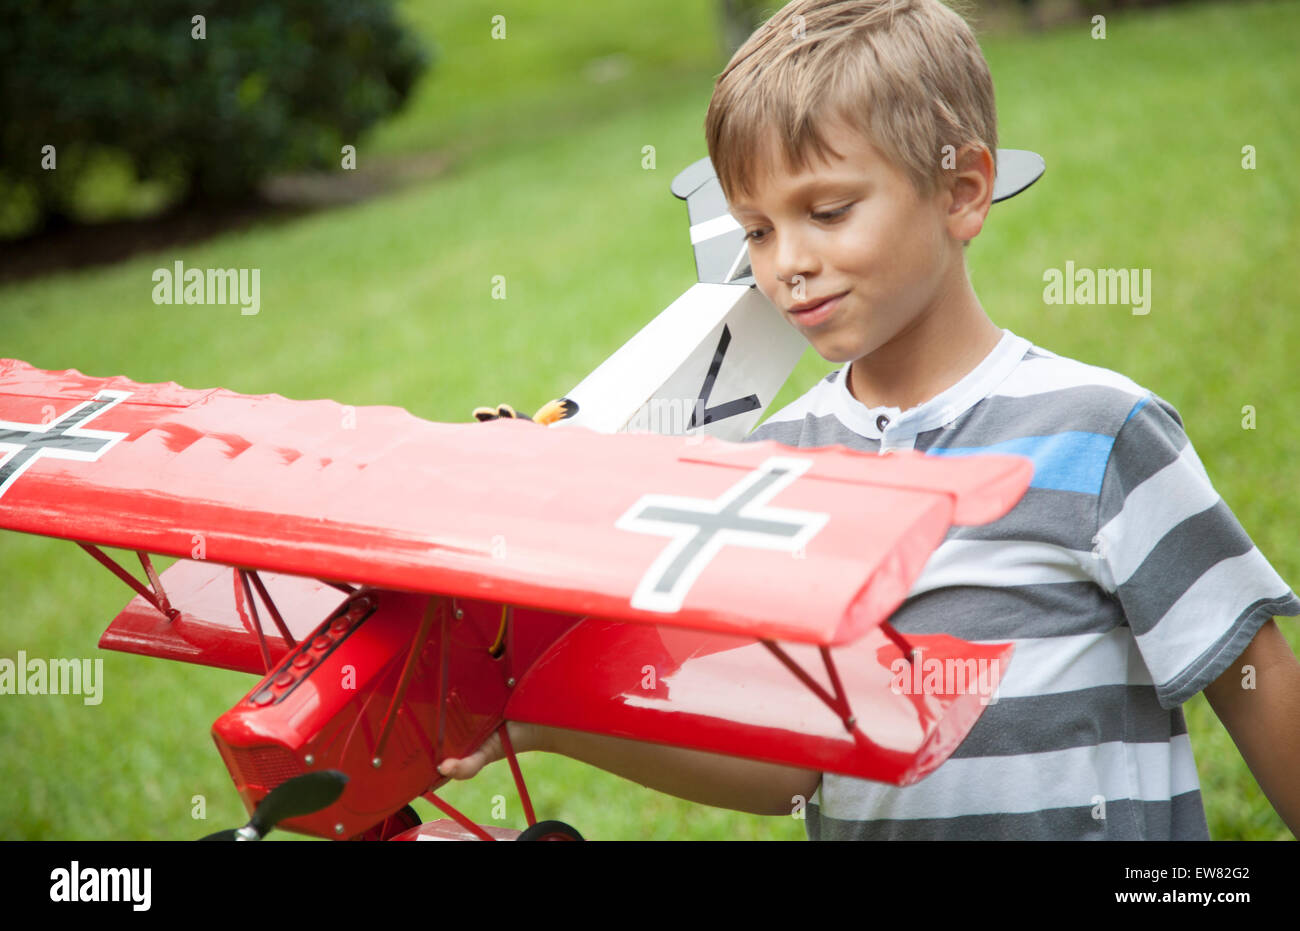 Young blonde haired boy playing with toy model red airplane - Stock Image